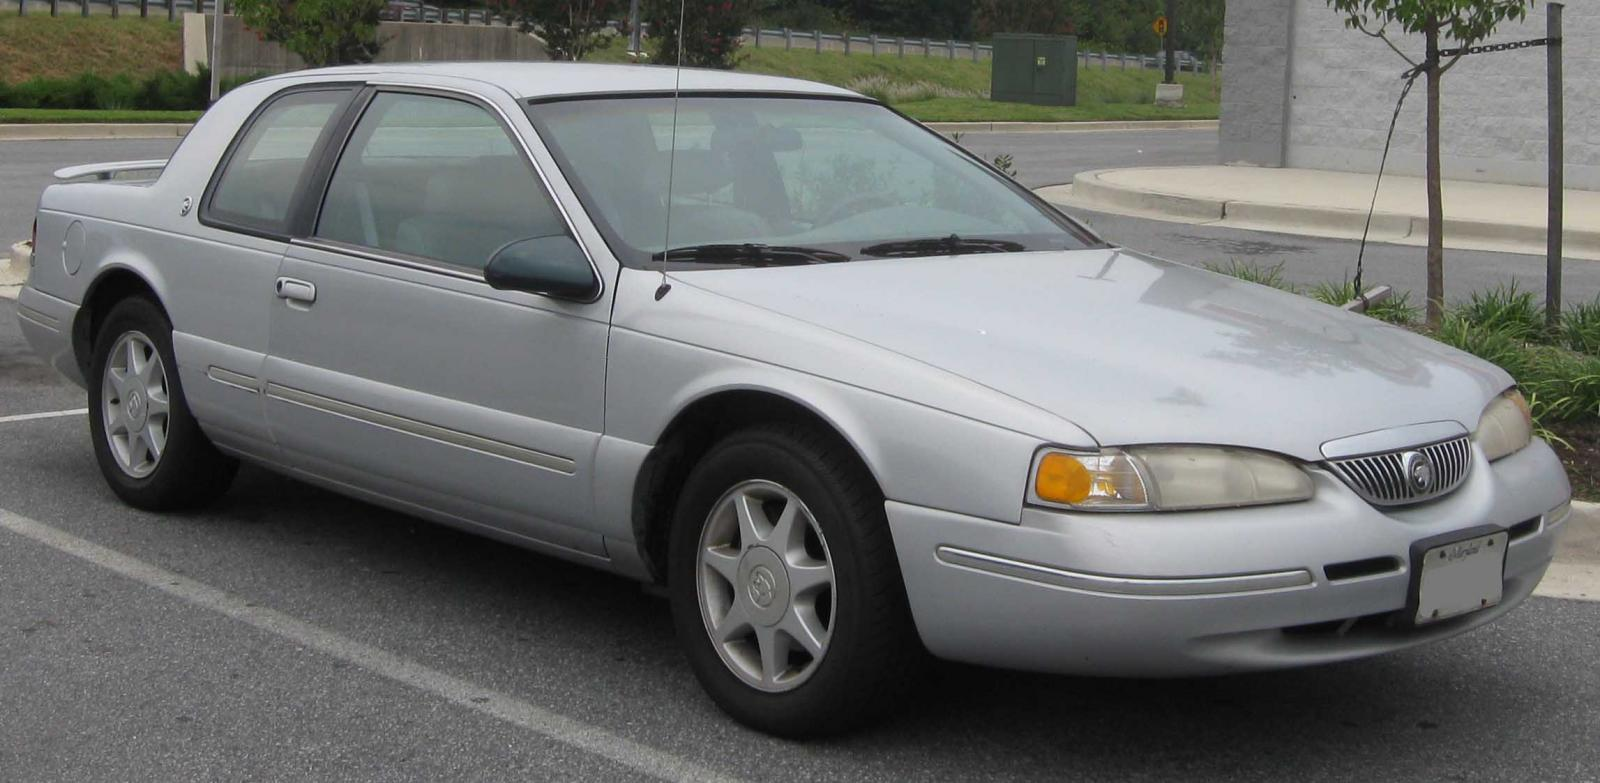 1990 Mercury Cougar Information And Photos Zomb Drive